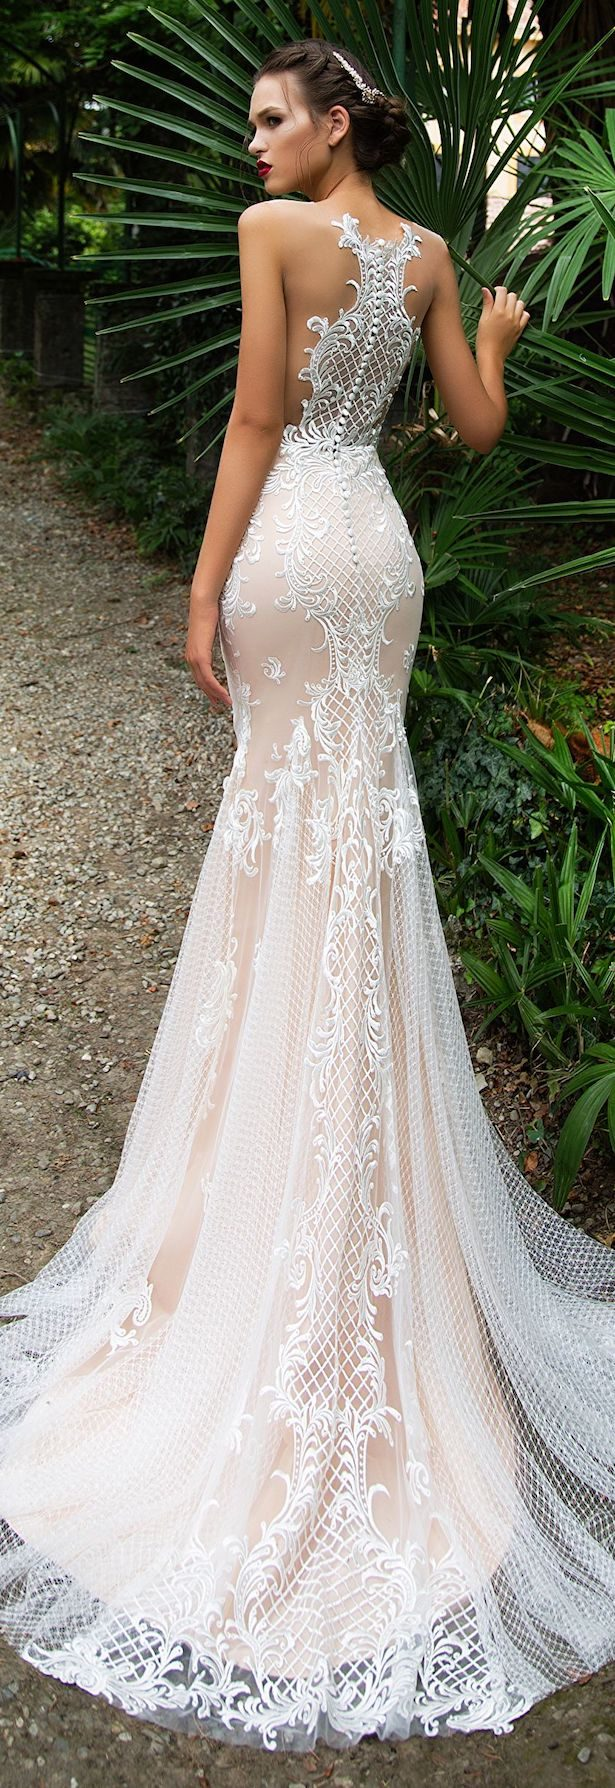 Best Wedding Dresses of 2017 - Wedding Dress by Milla Nova White Desire 2017 Bridal Collection - Salma